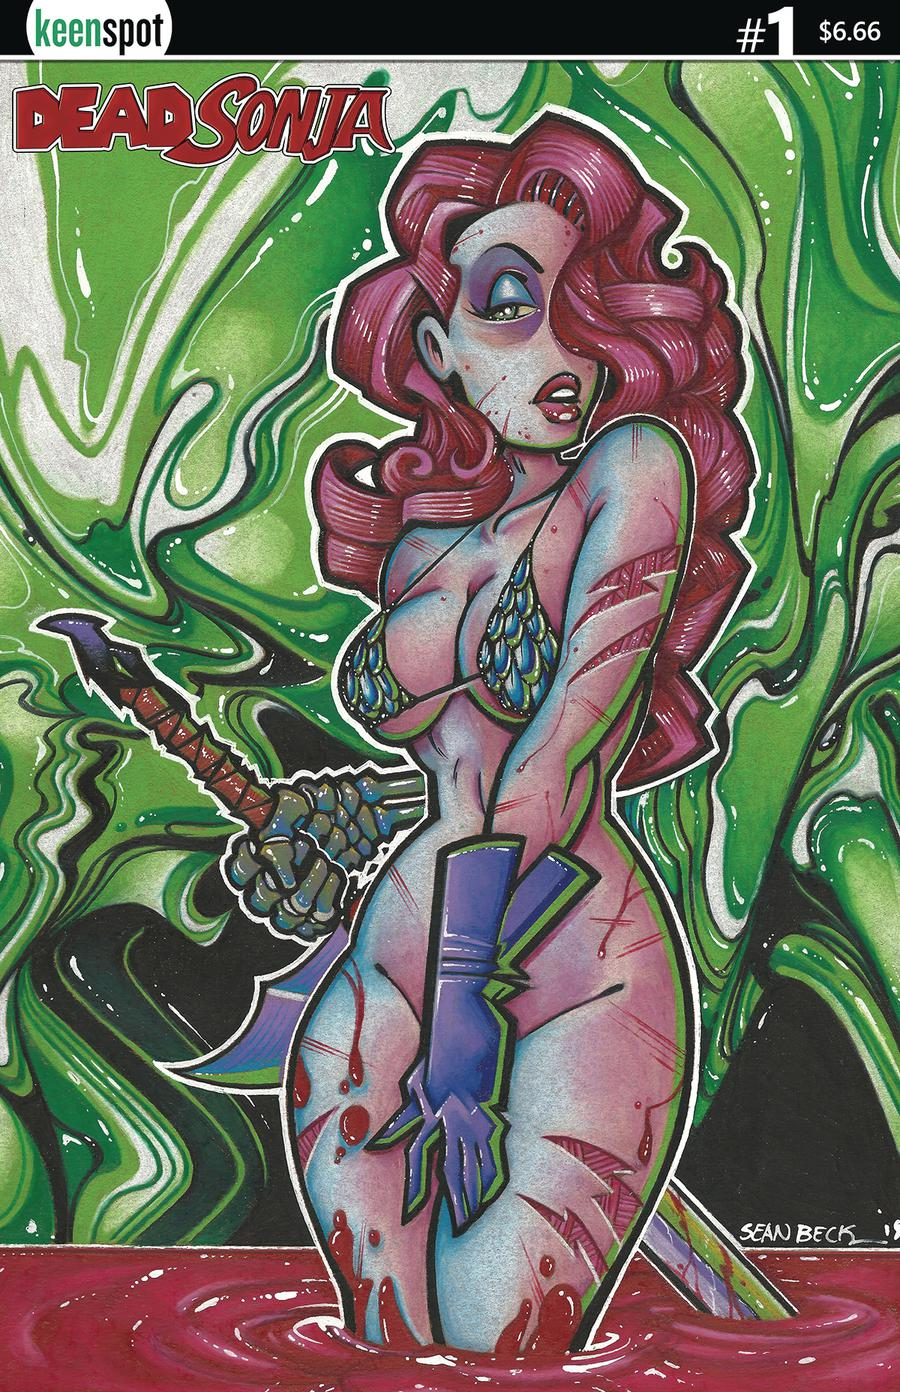 Dead Sonja #1 Cover C Variant Just Drawn That Way Cover